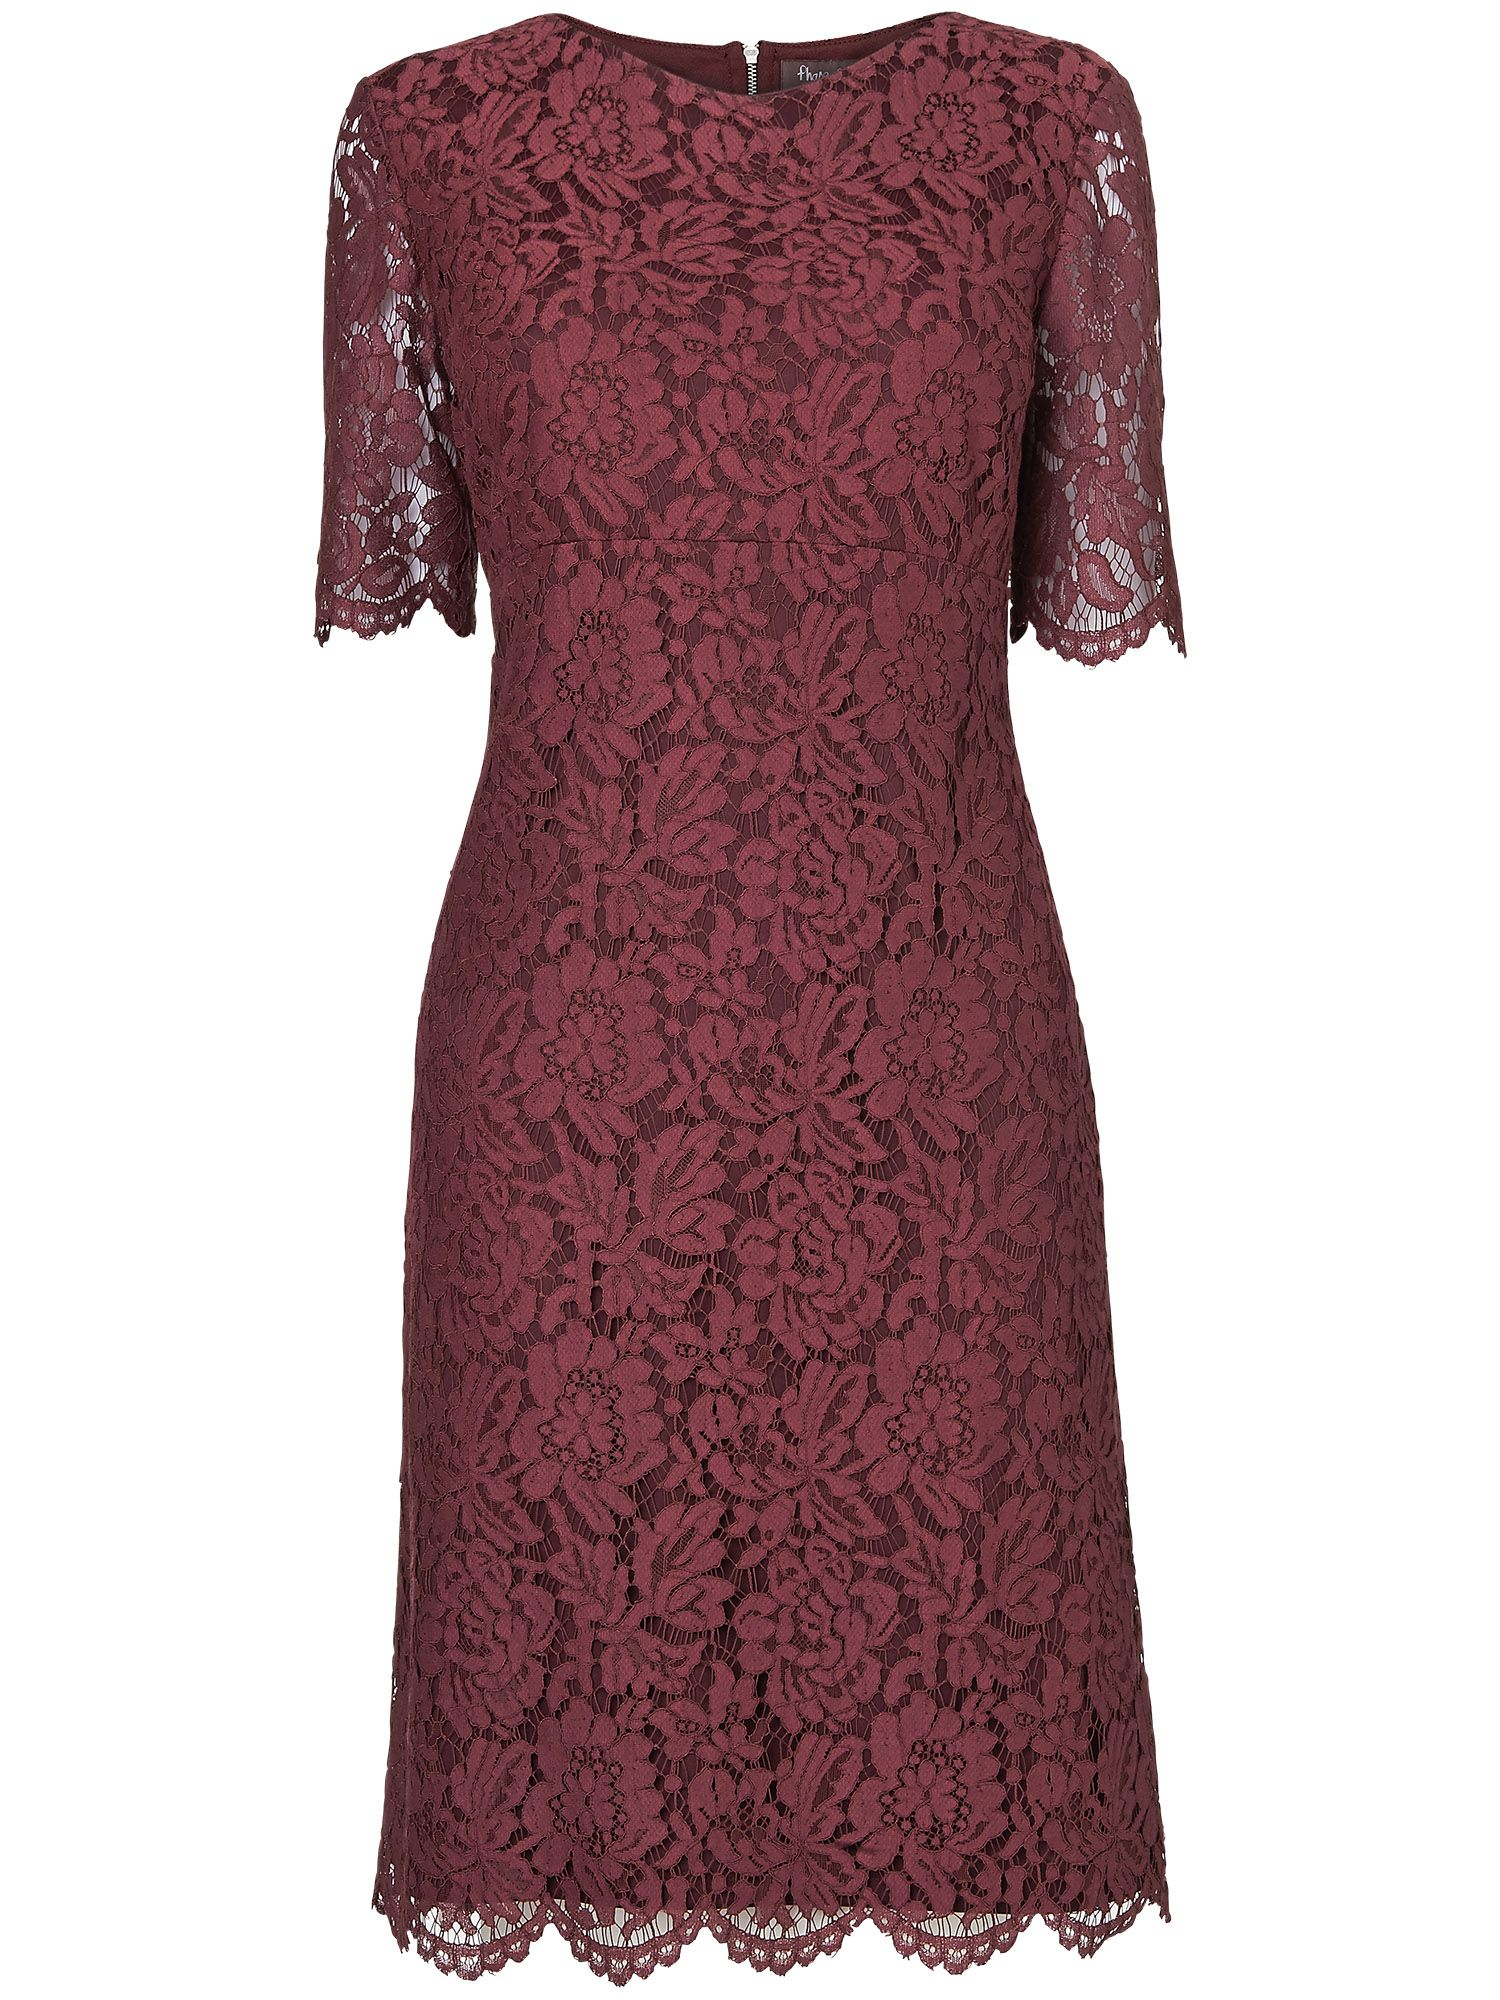 Lula lace dress